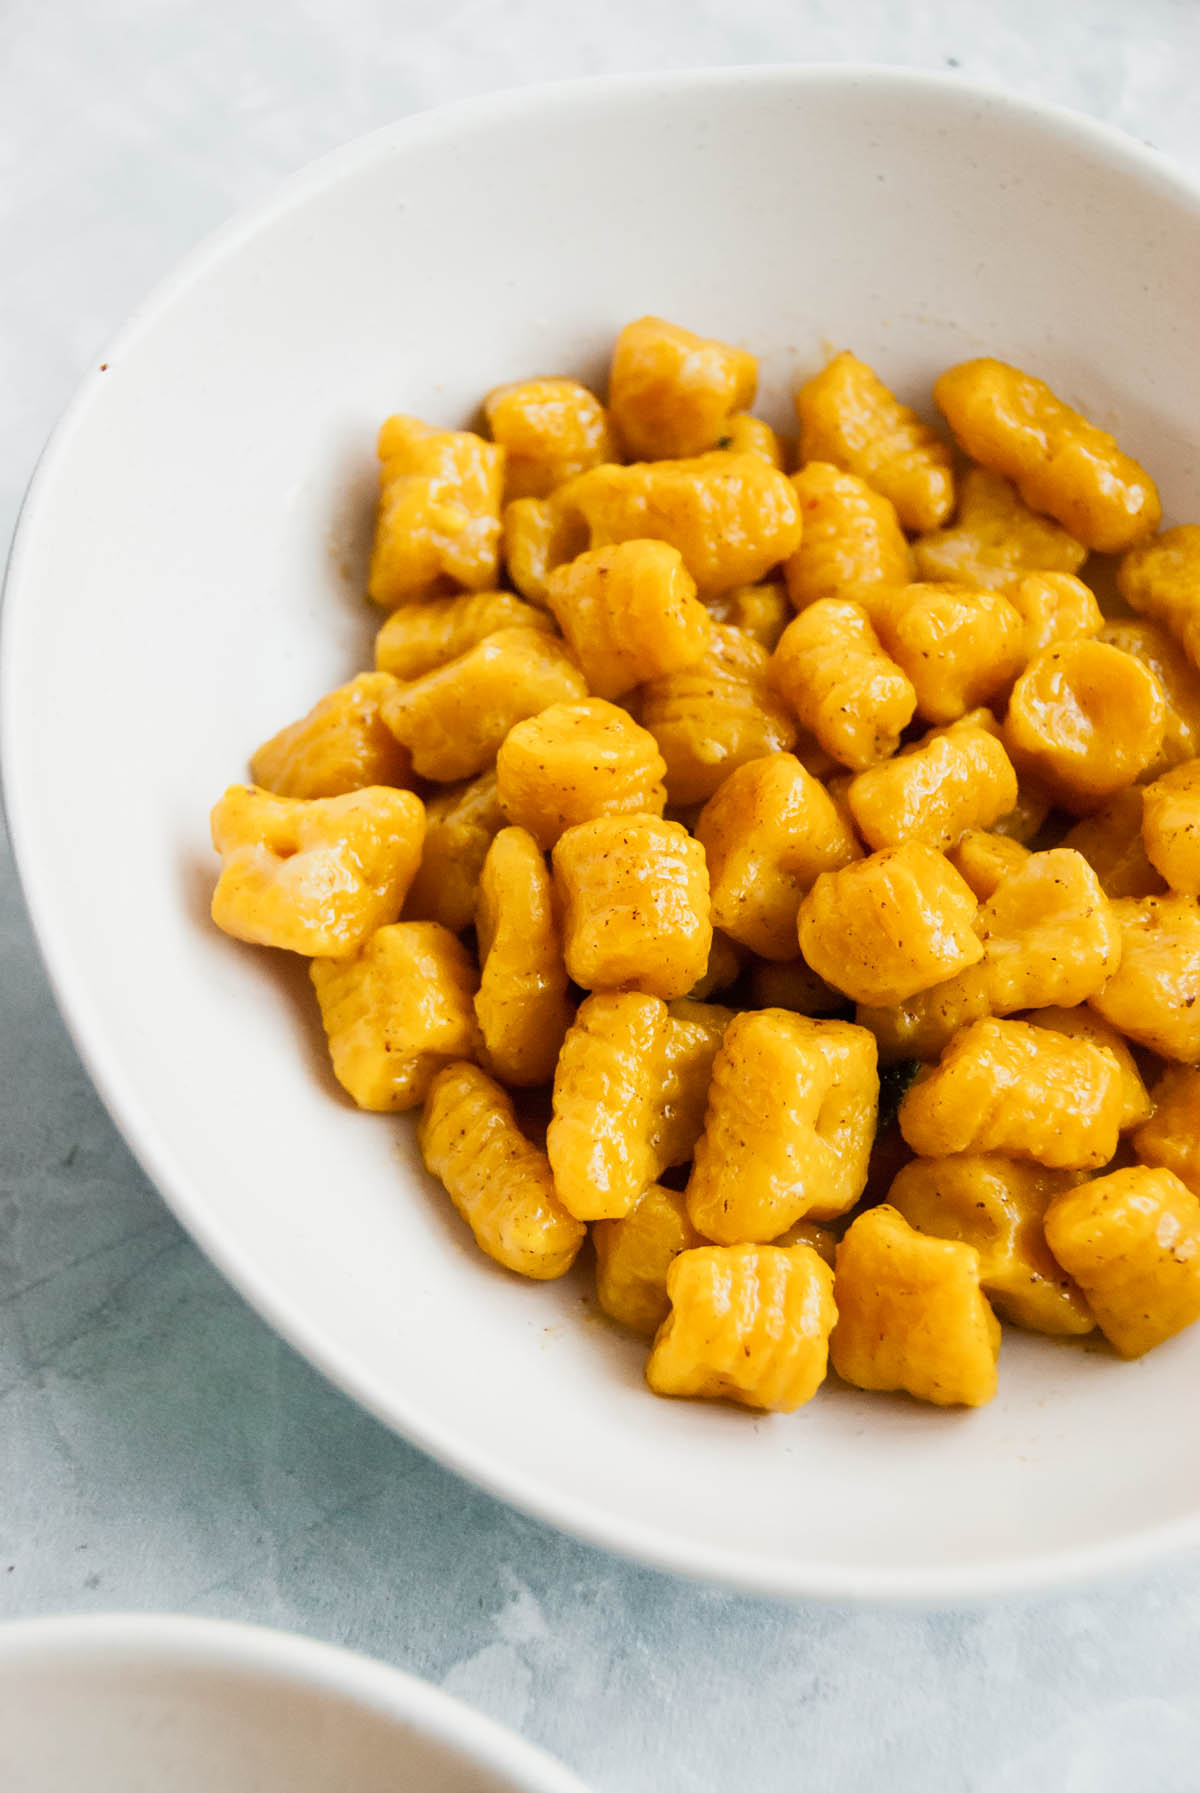 Close up of squash gnocchi in a pasta bowl.